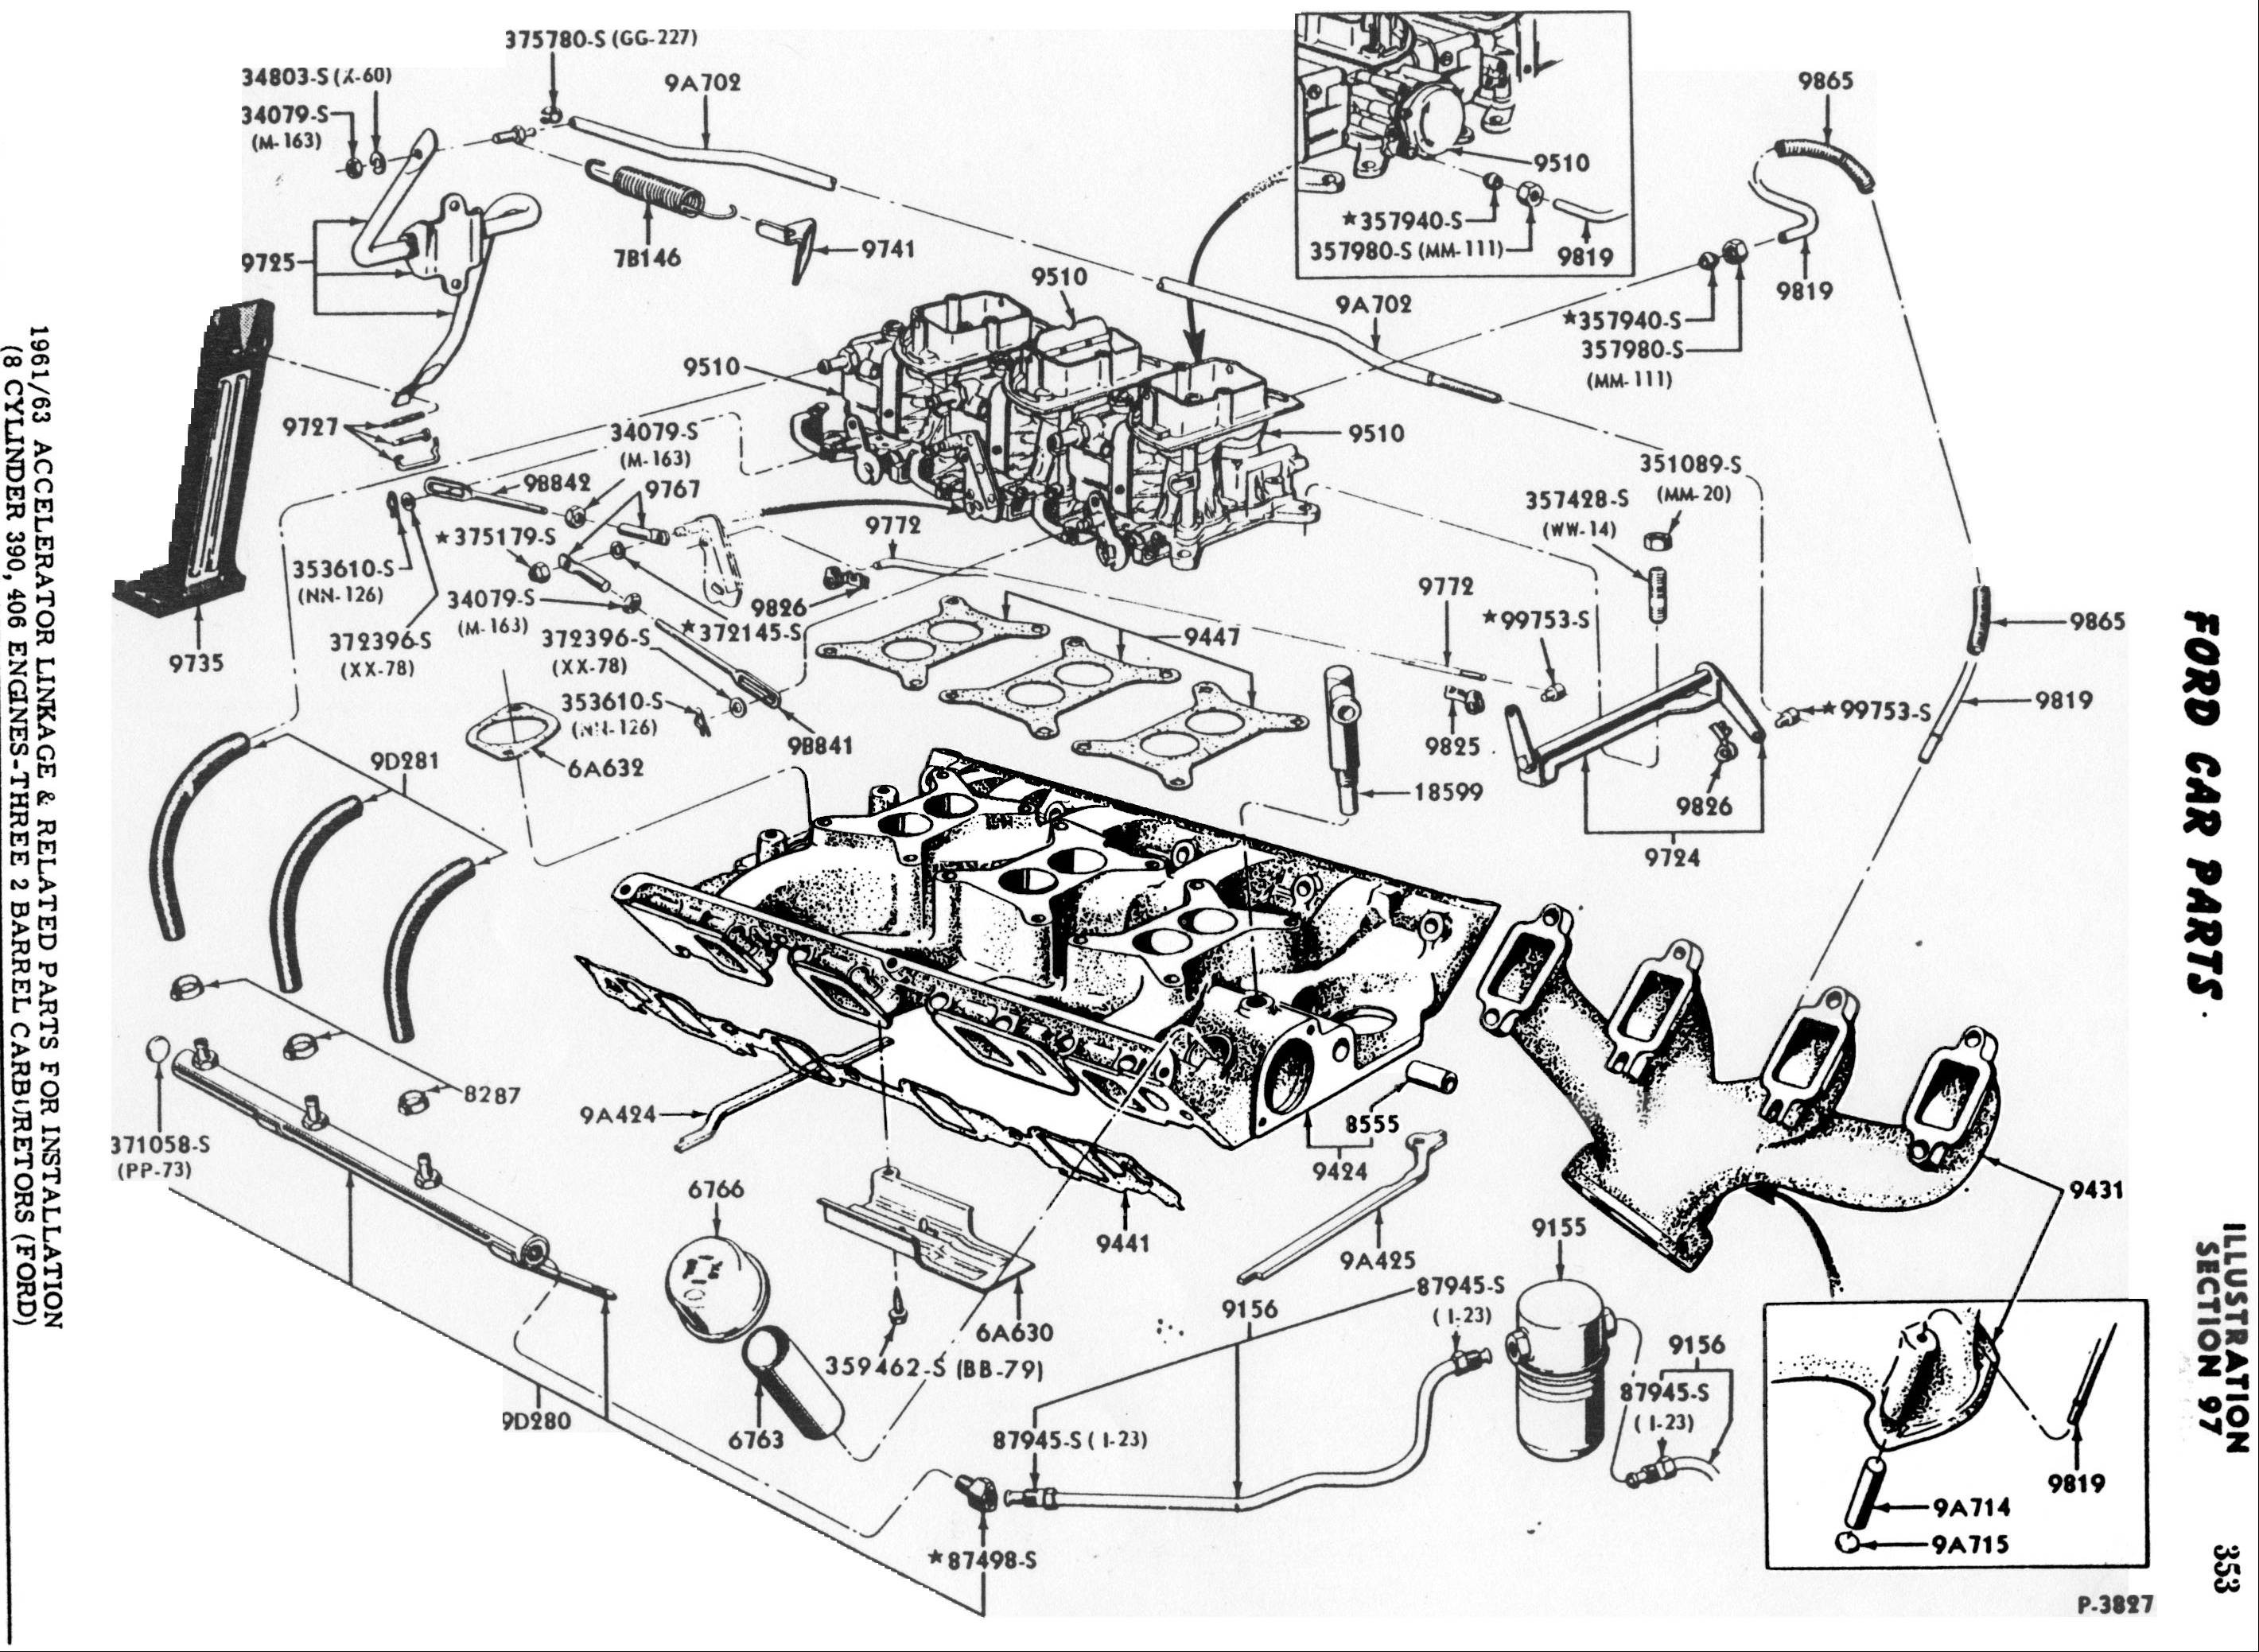 1978 Oldsmobile Engine Diagram Wiring Schematic